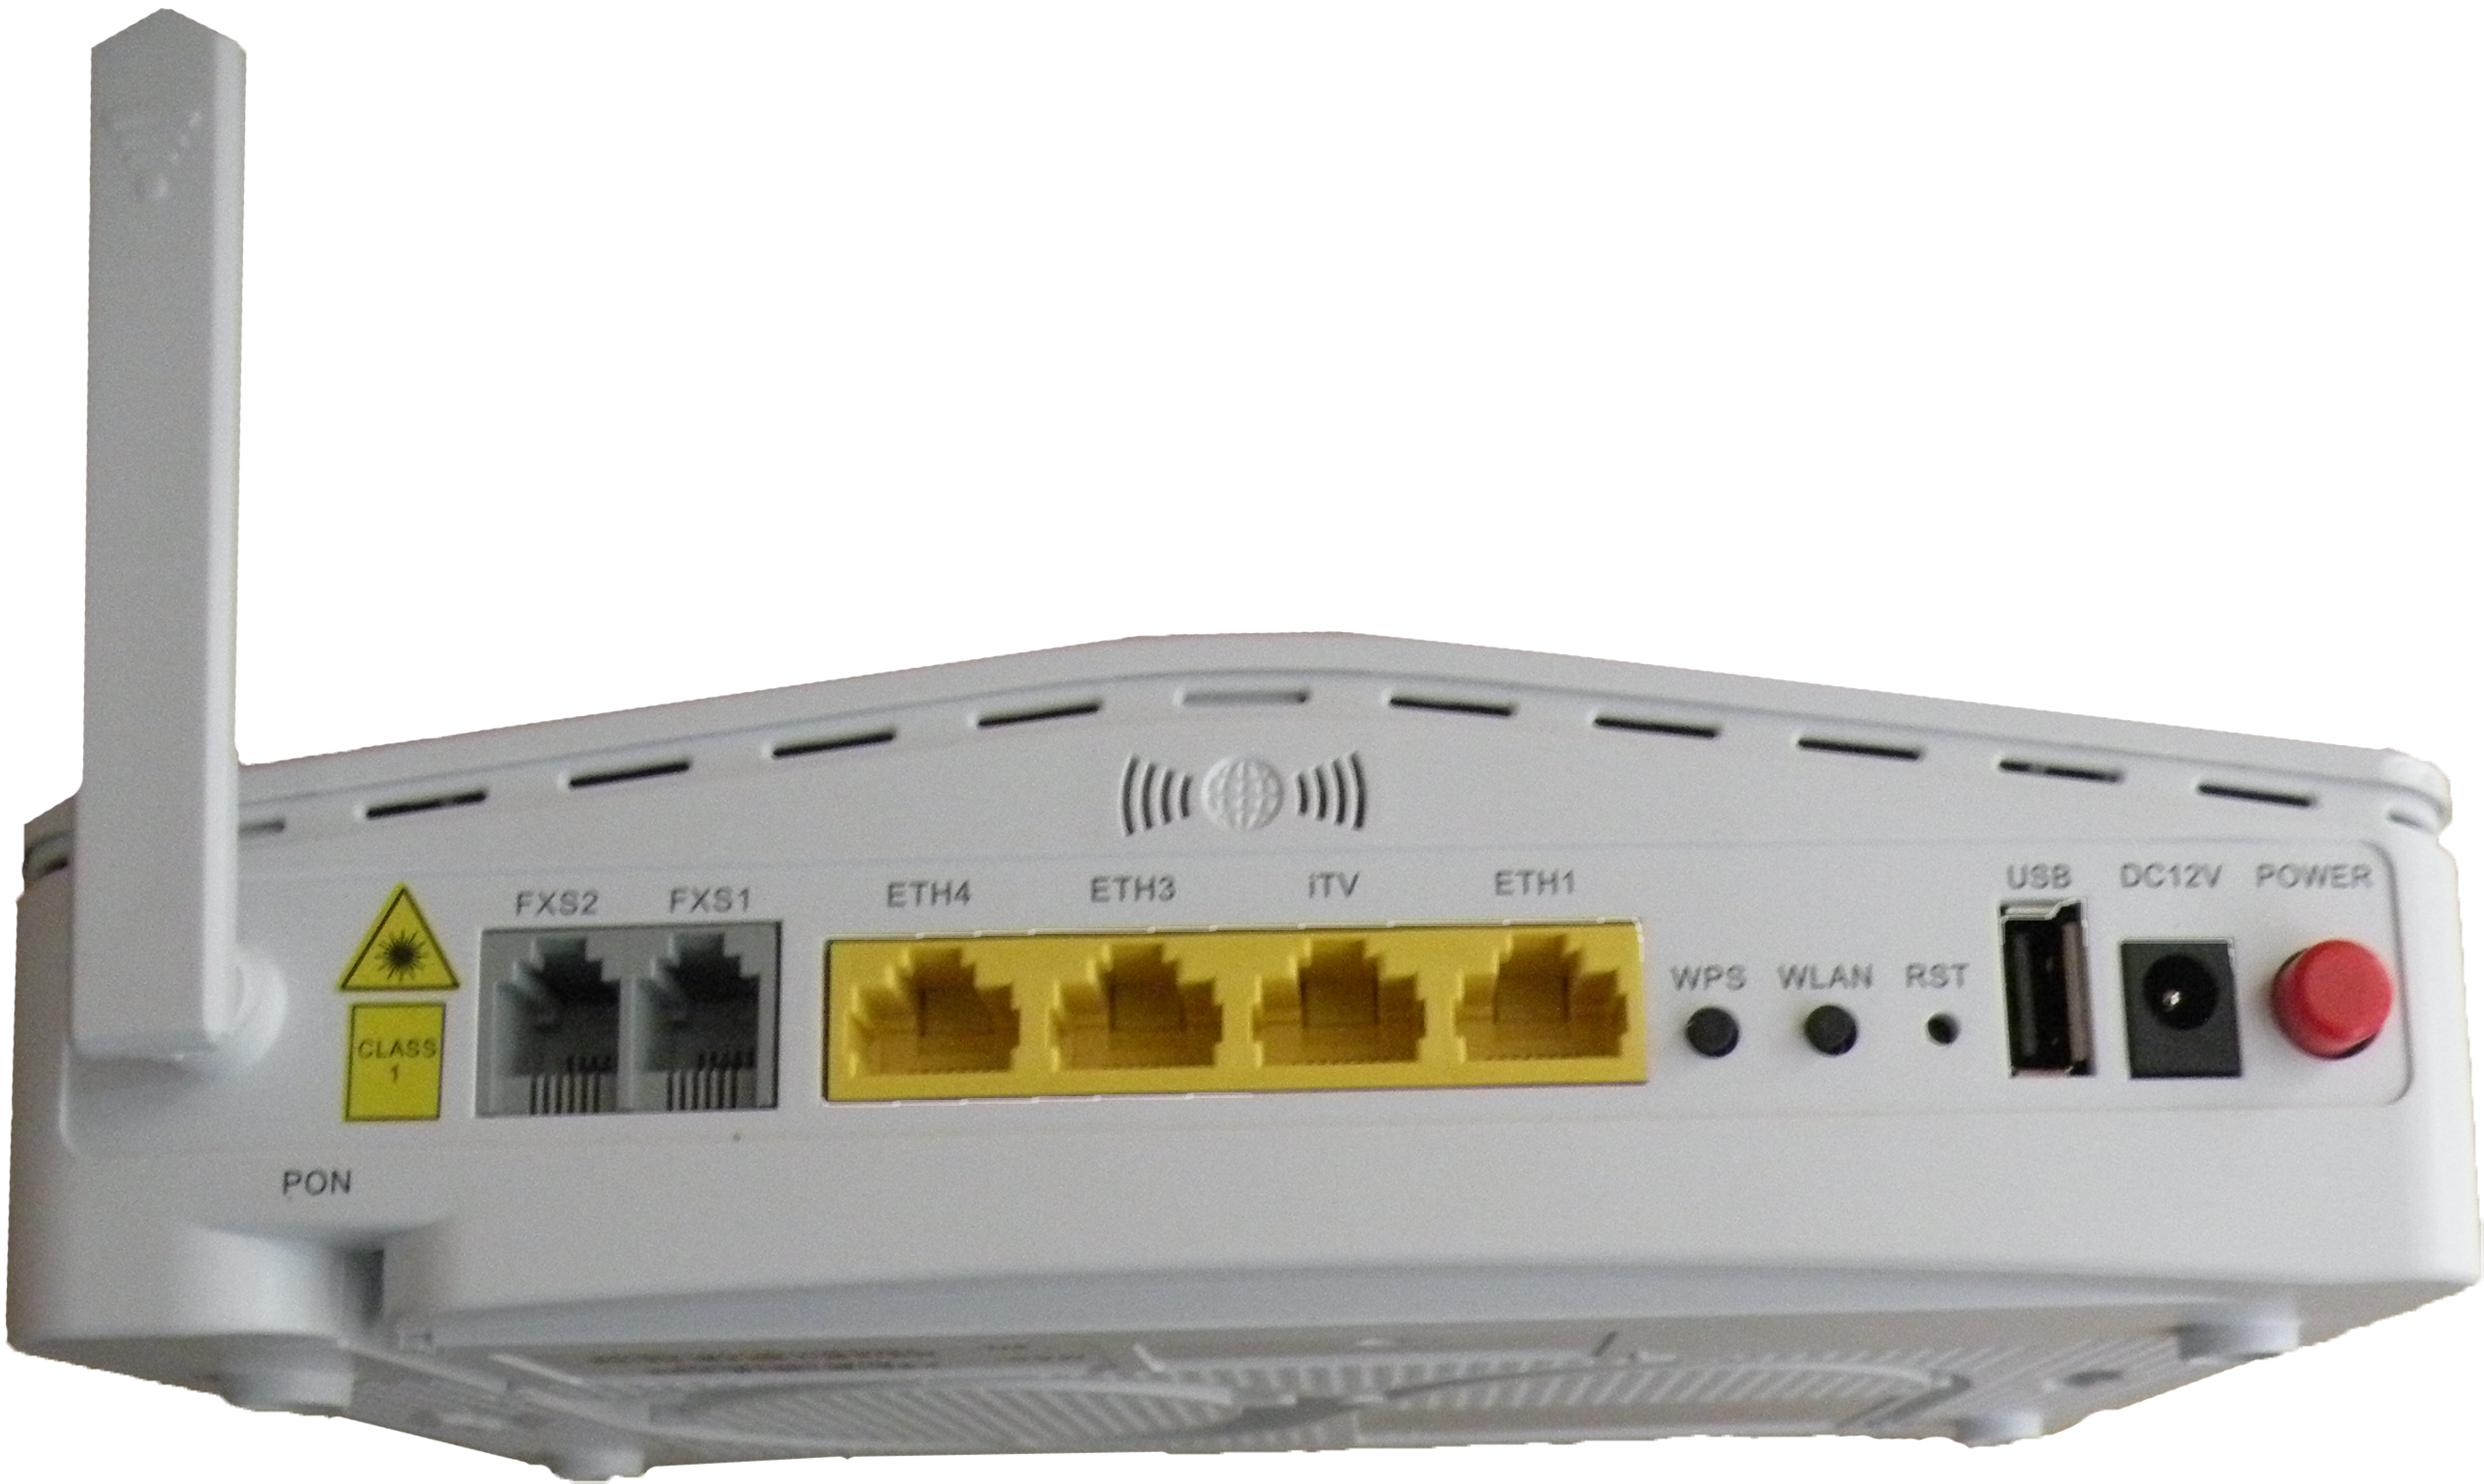 EPON Home Gateway Unit (HGU) with WiFi